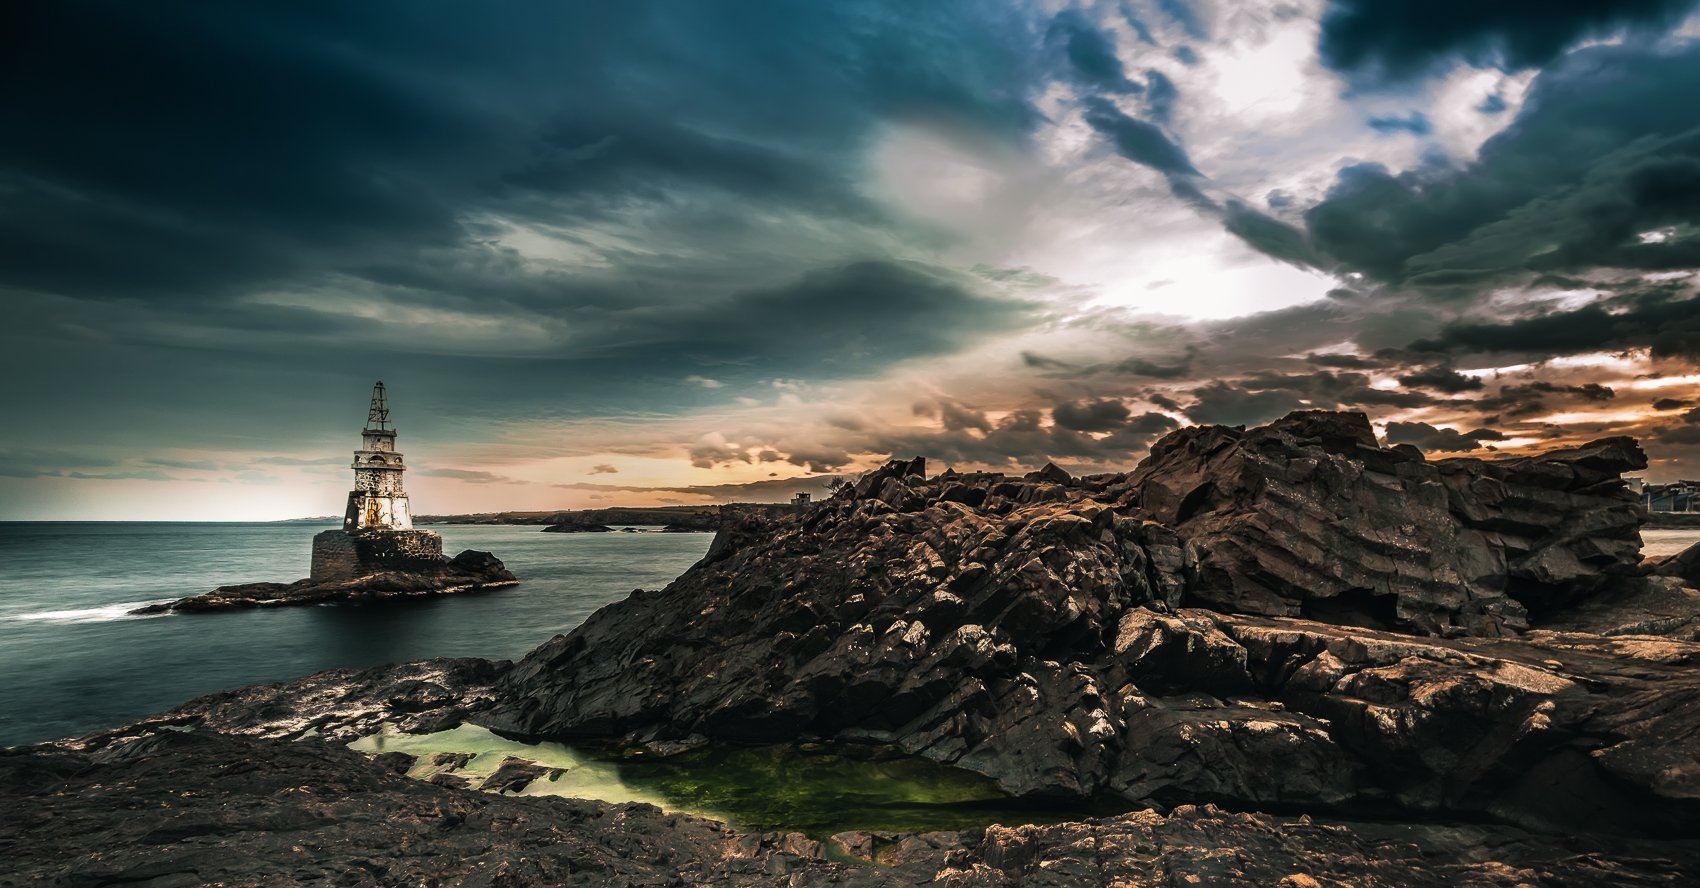 clouds, sunset, dark, lighthouse, rocks, light, seascape, Jeni Madjarova